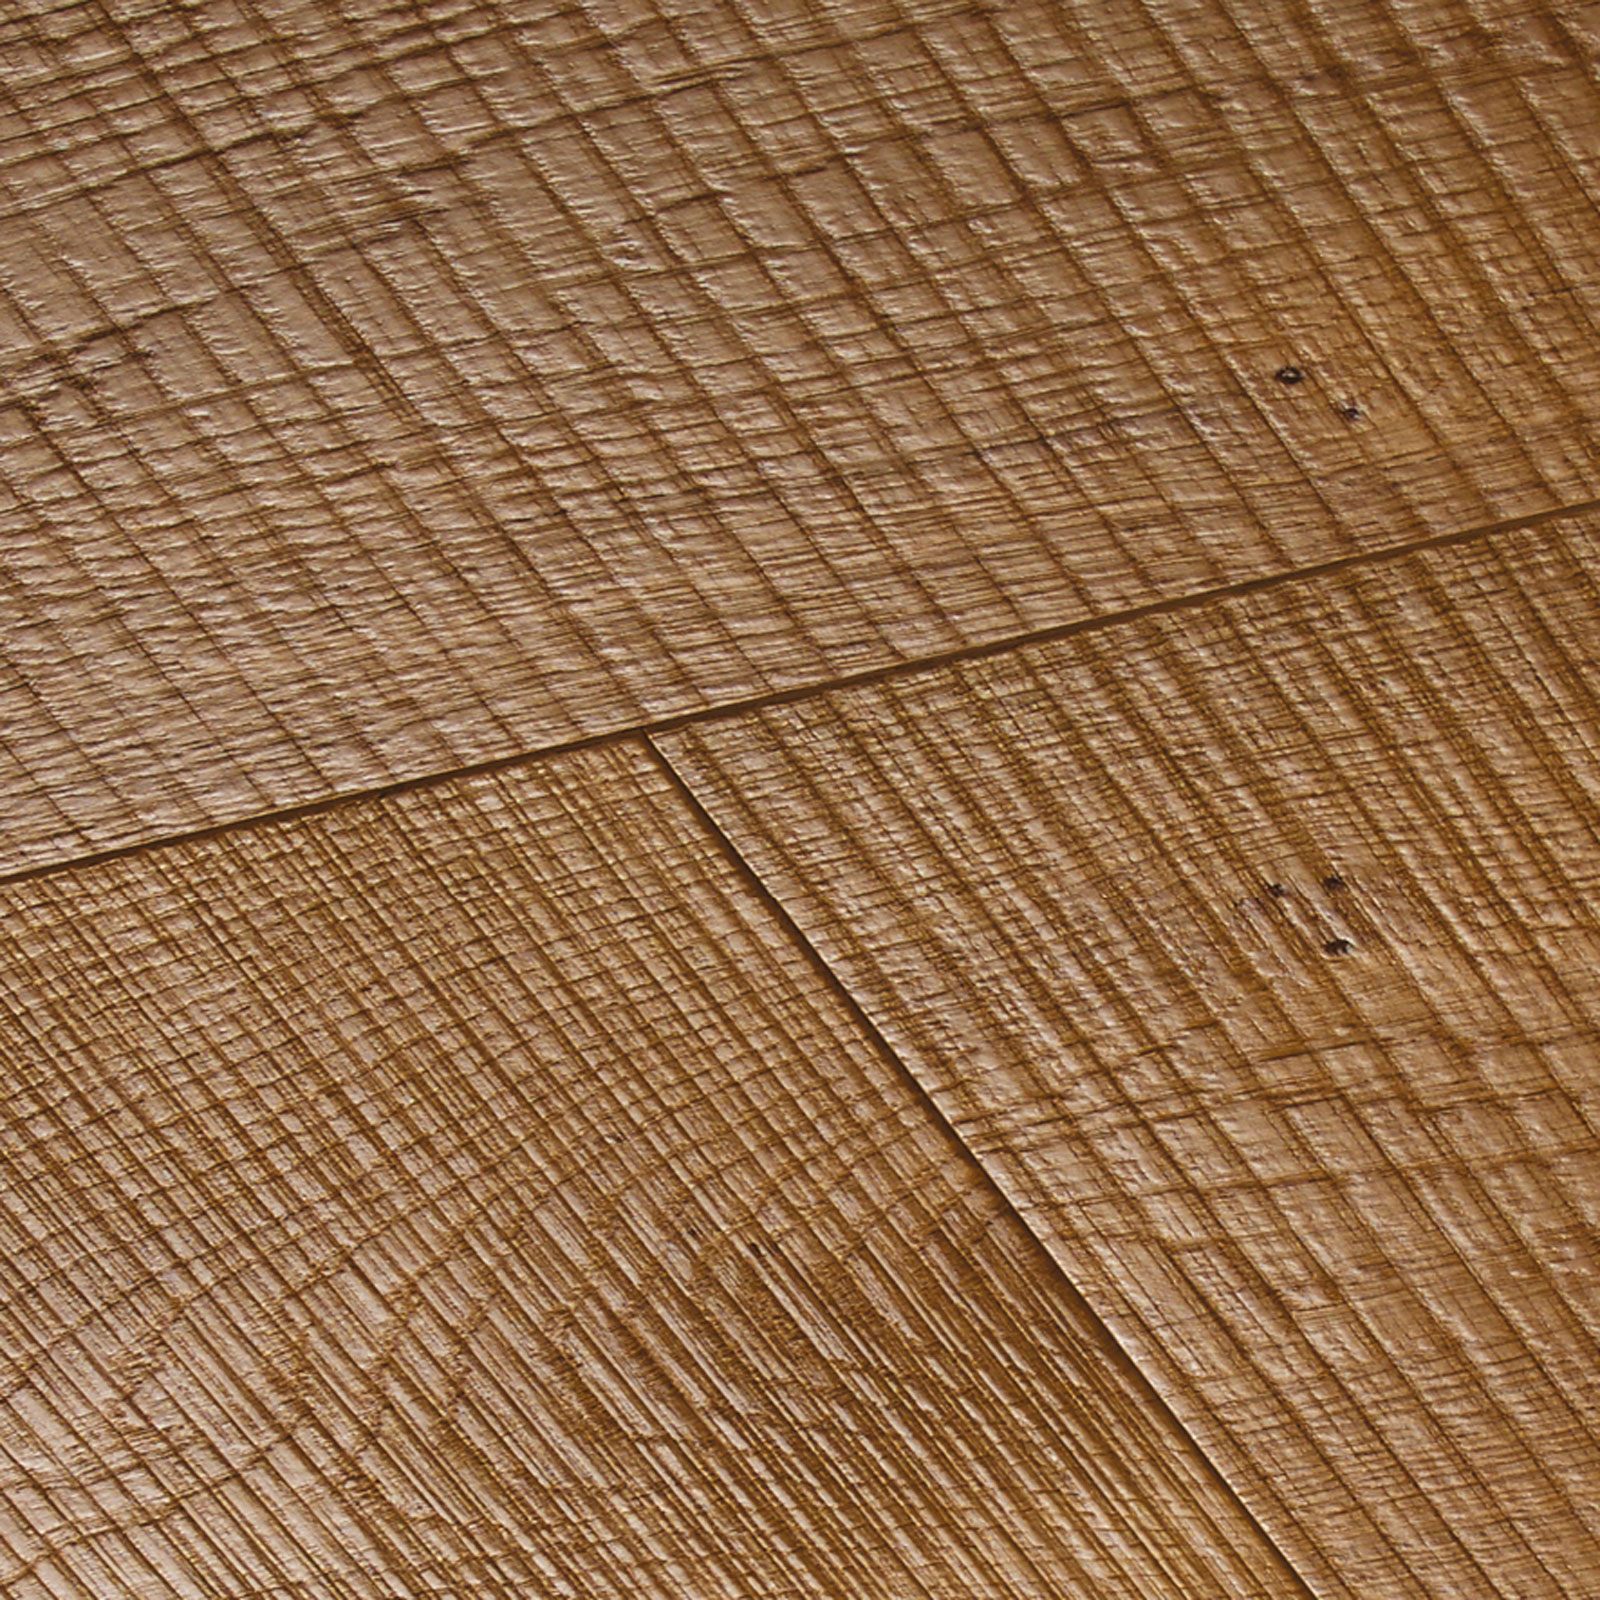 swatch-cropped-chepstow-sawn-natural-oak-1600